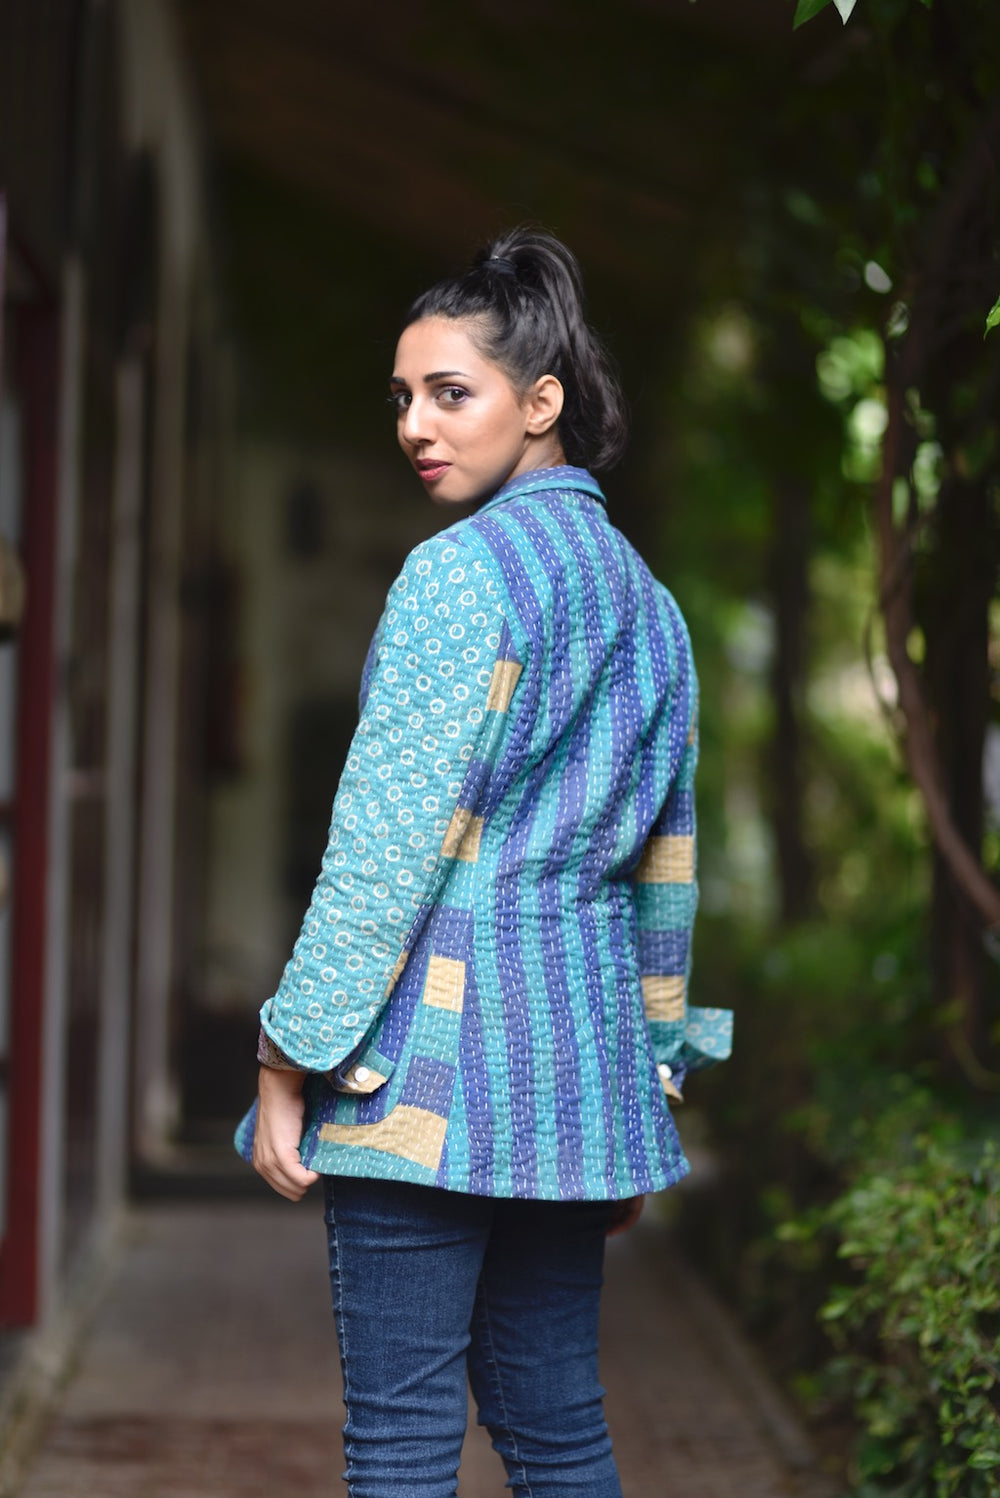 Austin,Small, Boyfriend Blazer, Jacket Made with Vintage Kantha Fabric - kinchecom